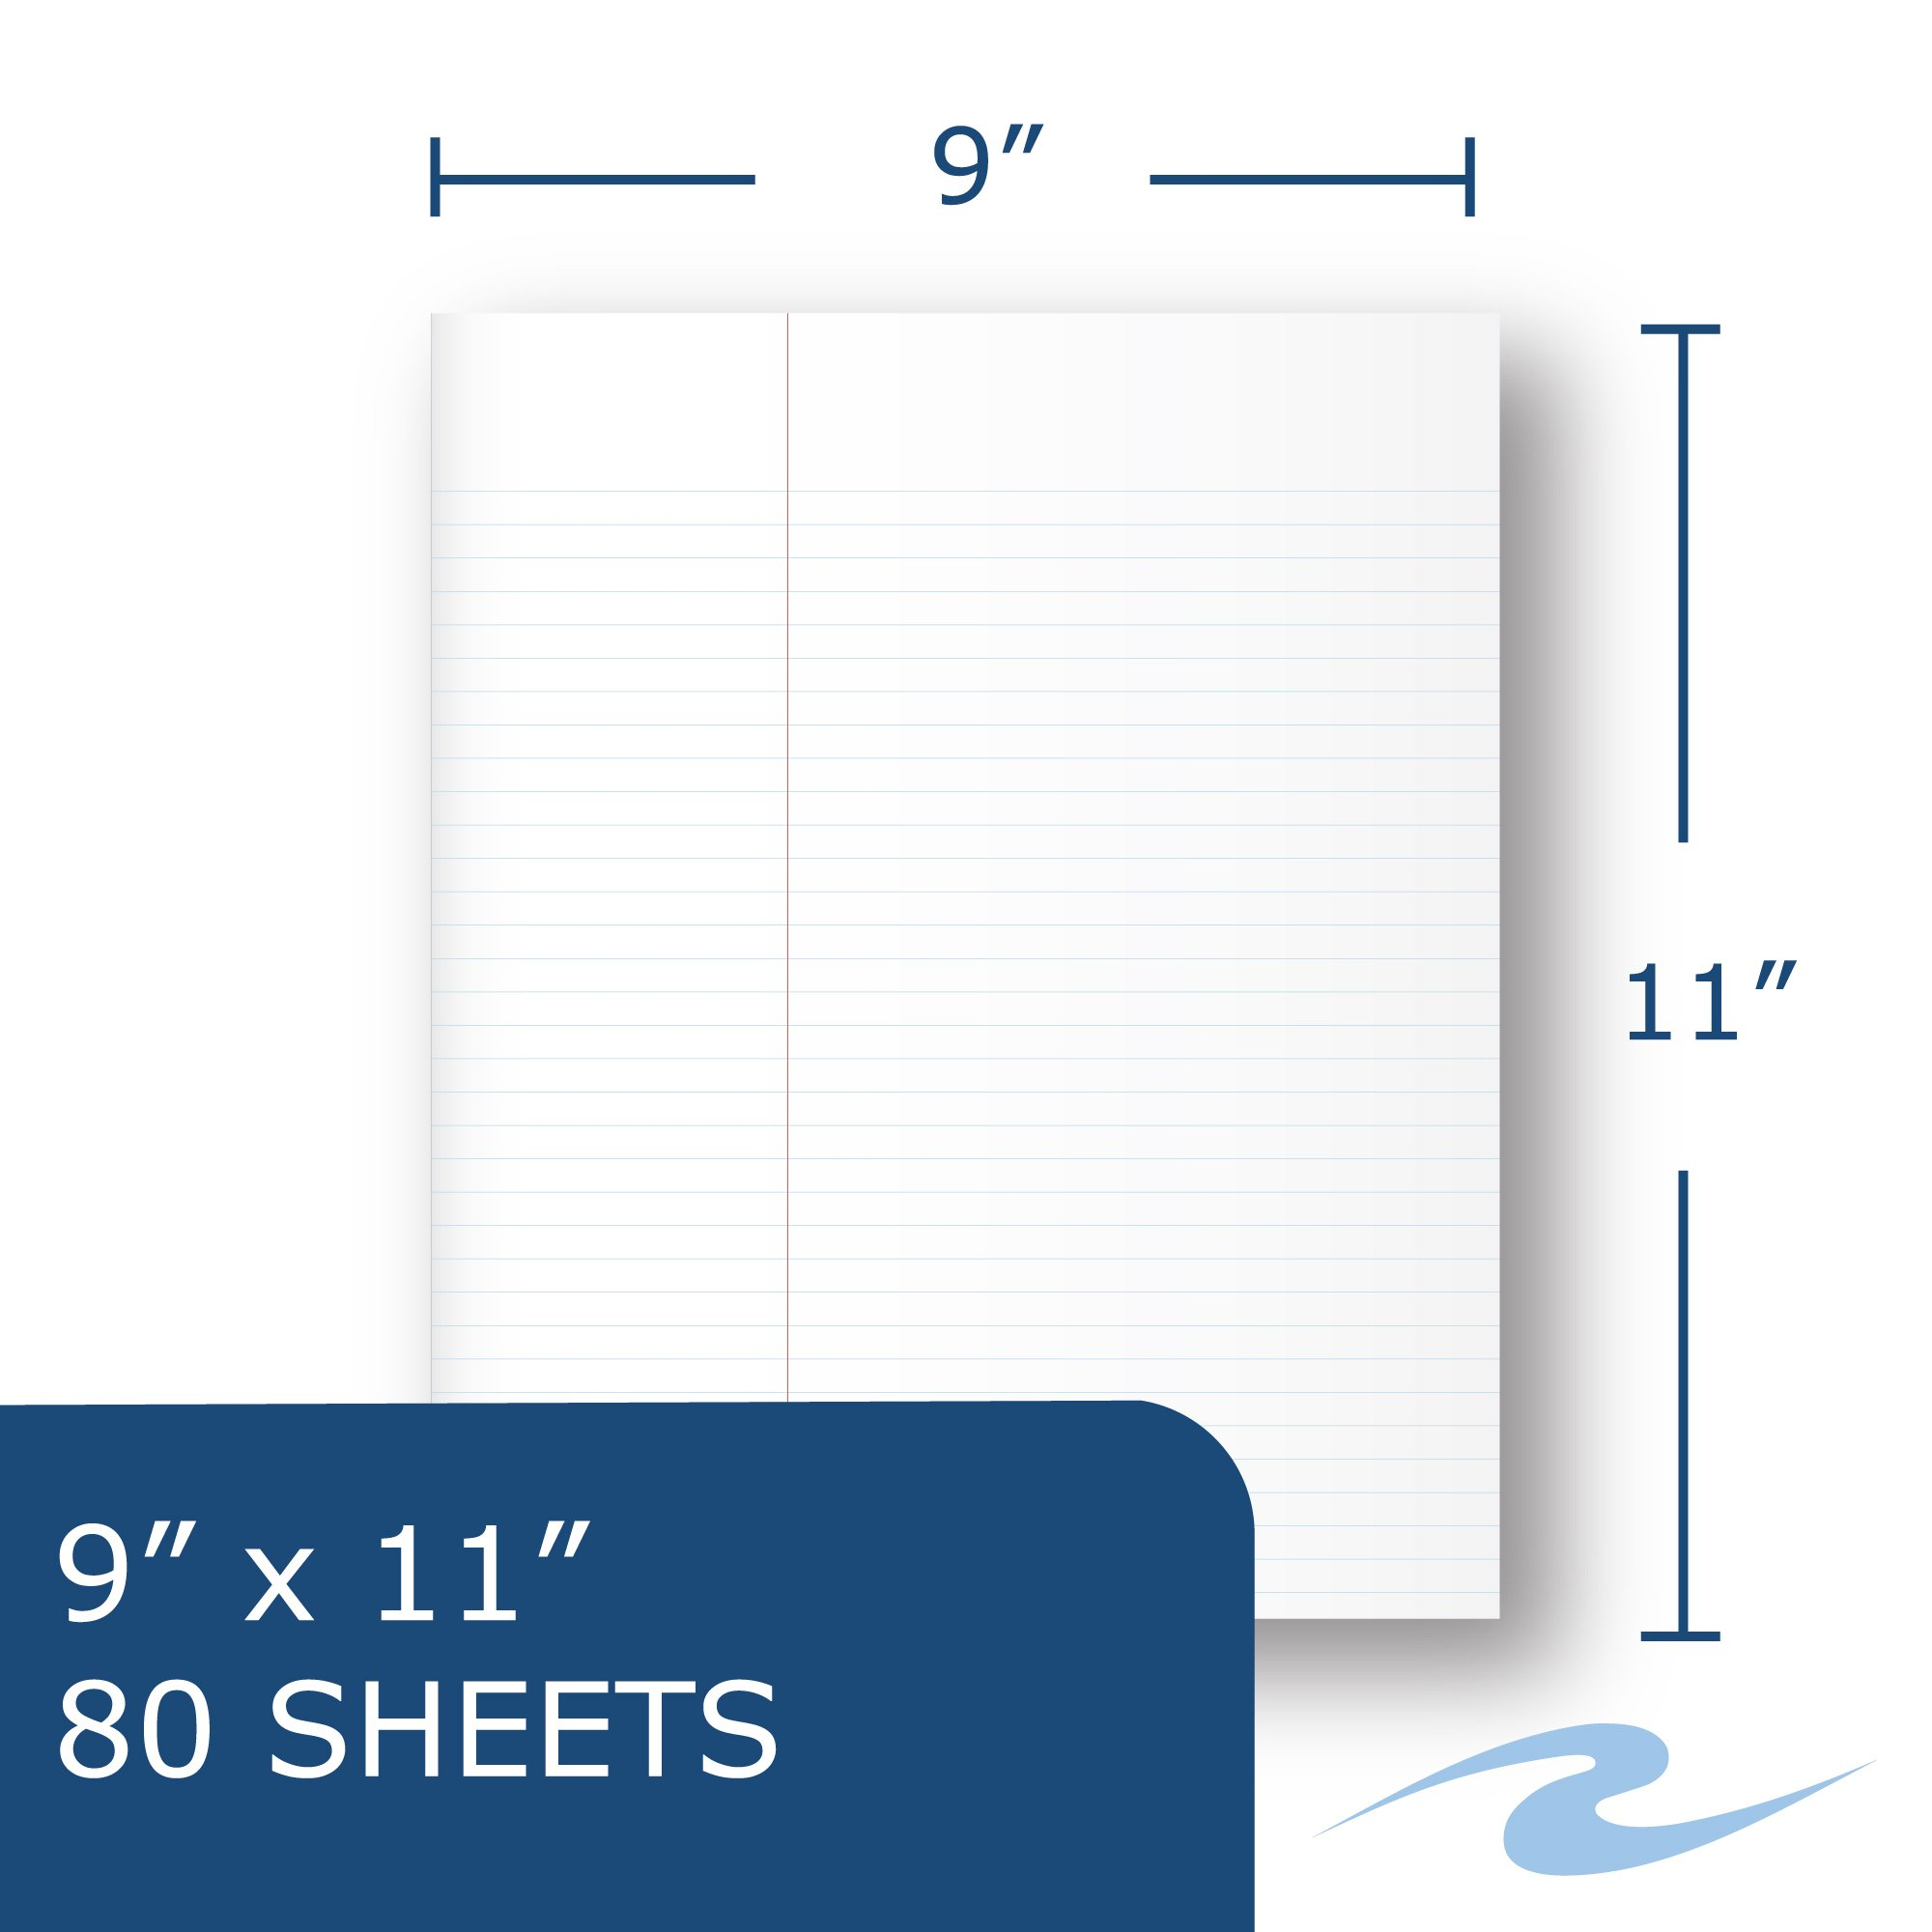 Case of 24 One Subject Notebooks, 11''x9'', 80 sheets of 15# White Paper, law Ruled, Perforated, Assorted Color covers by Roaring Spring (Image #5)